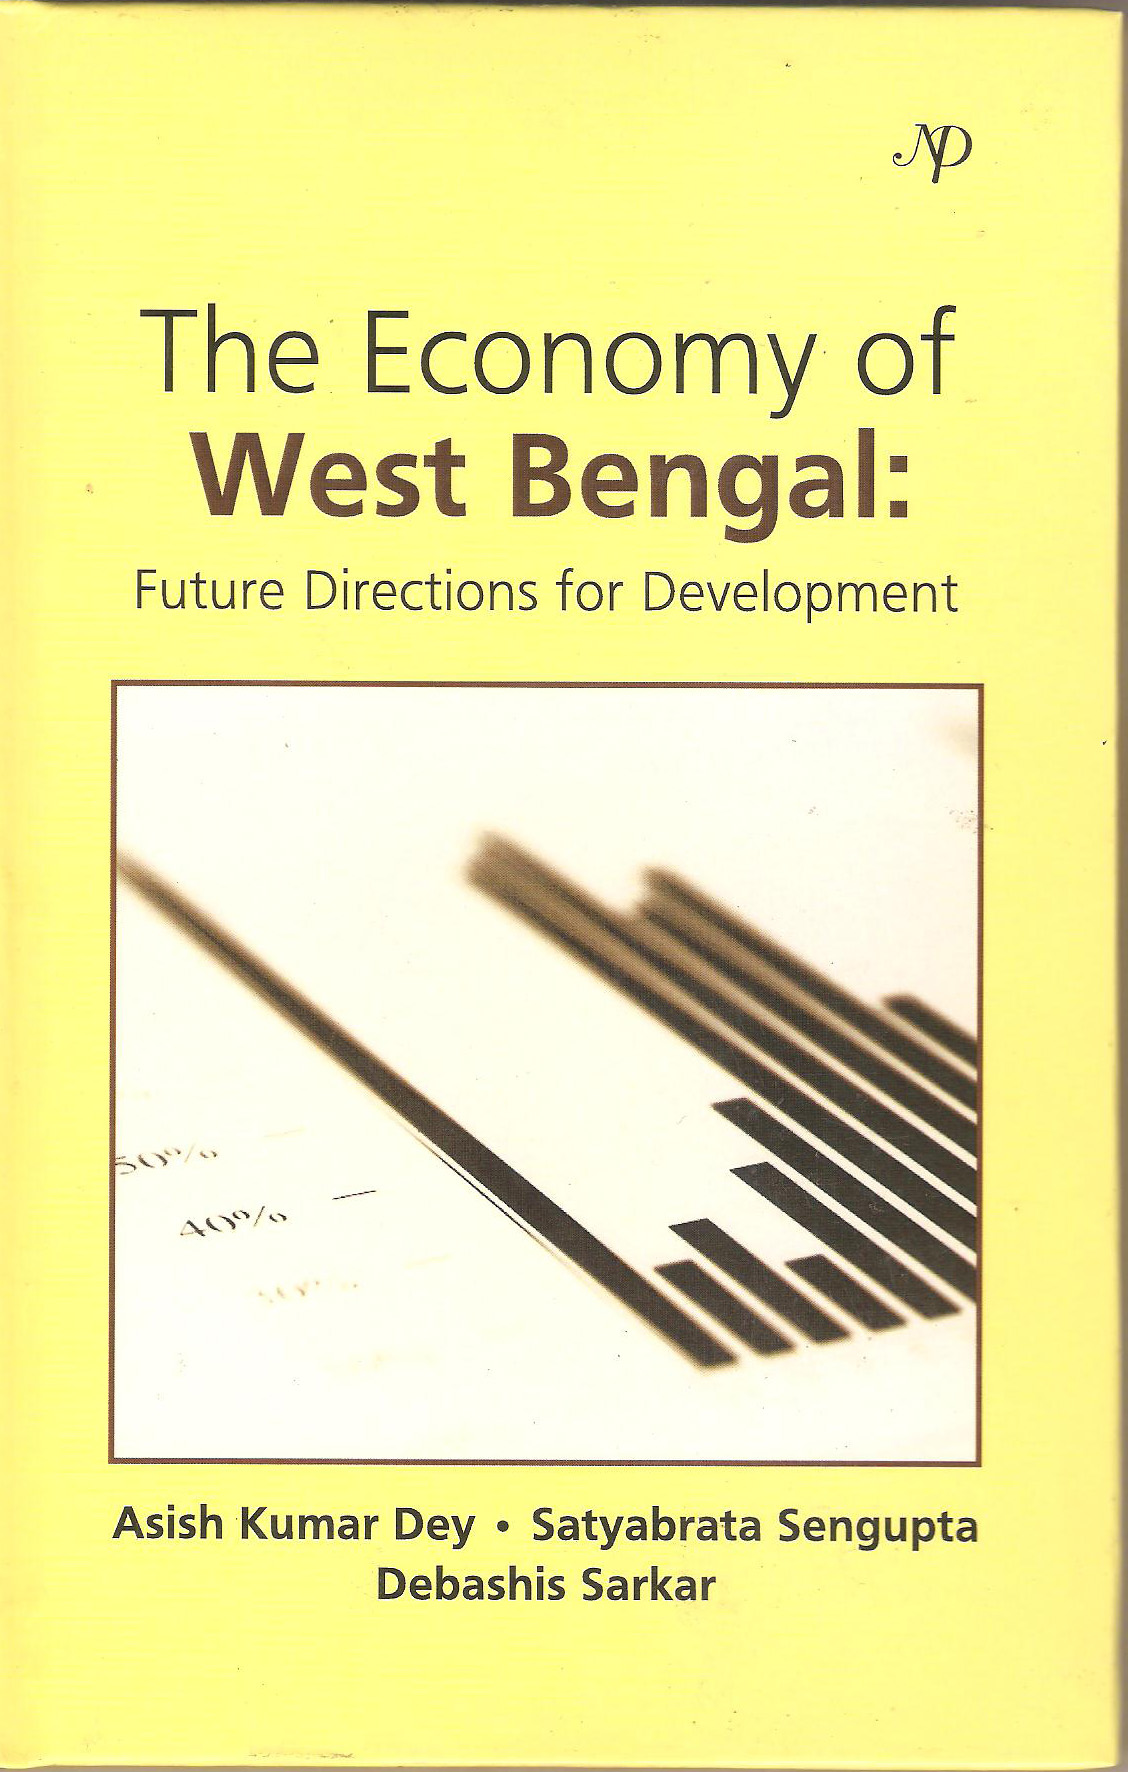 economy of west bengal Special article the economy of west bengal ratan khasnabis even after 30 years of left front rule in west bengal, the state has lagged behind in a few economic indicators, this, despite better performance in agriculture.